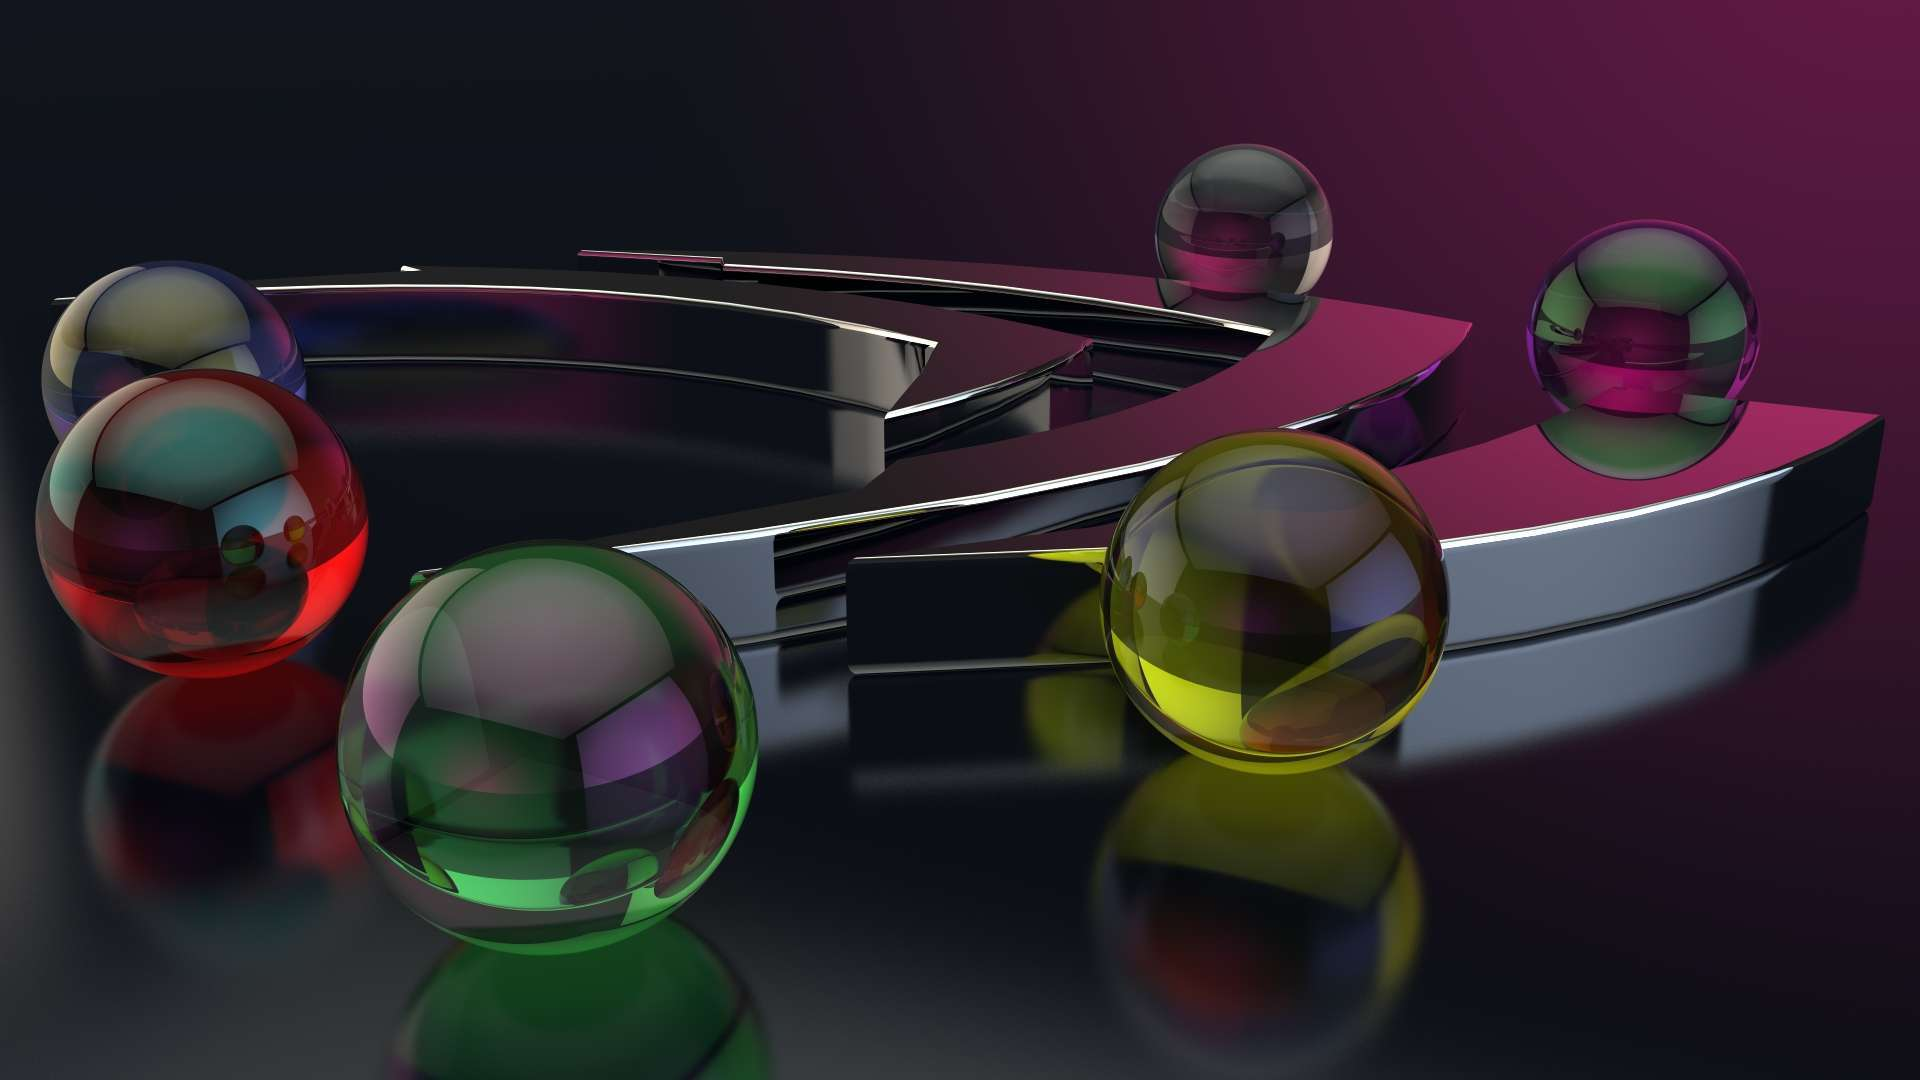 Wallpaper Balls Form Glass Surface Gloss Hd Wallpaper 1080p Upload 1920x1080